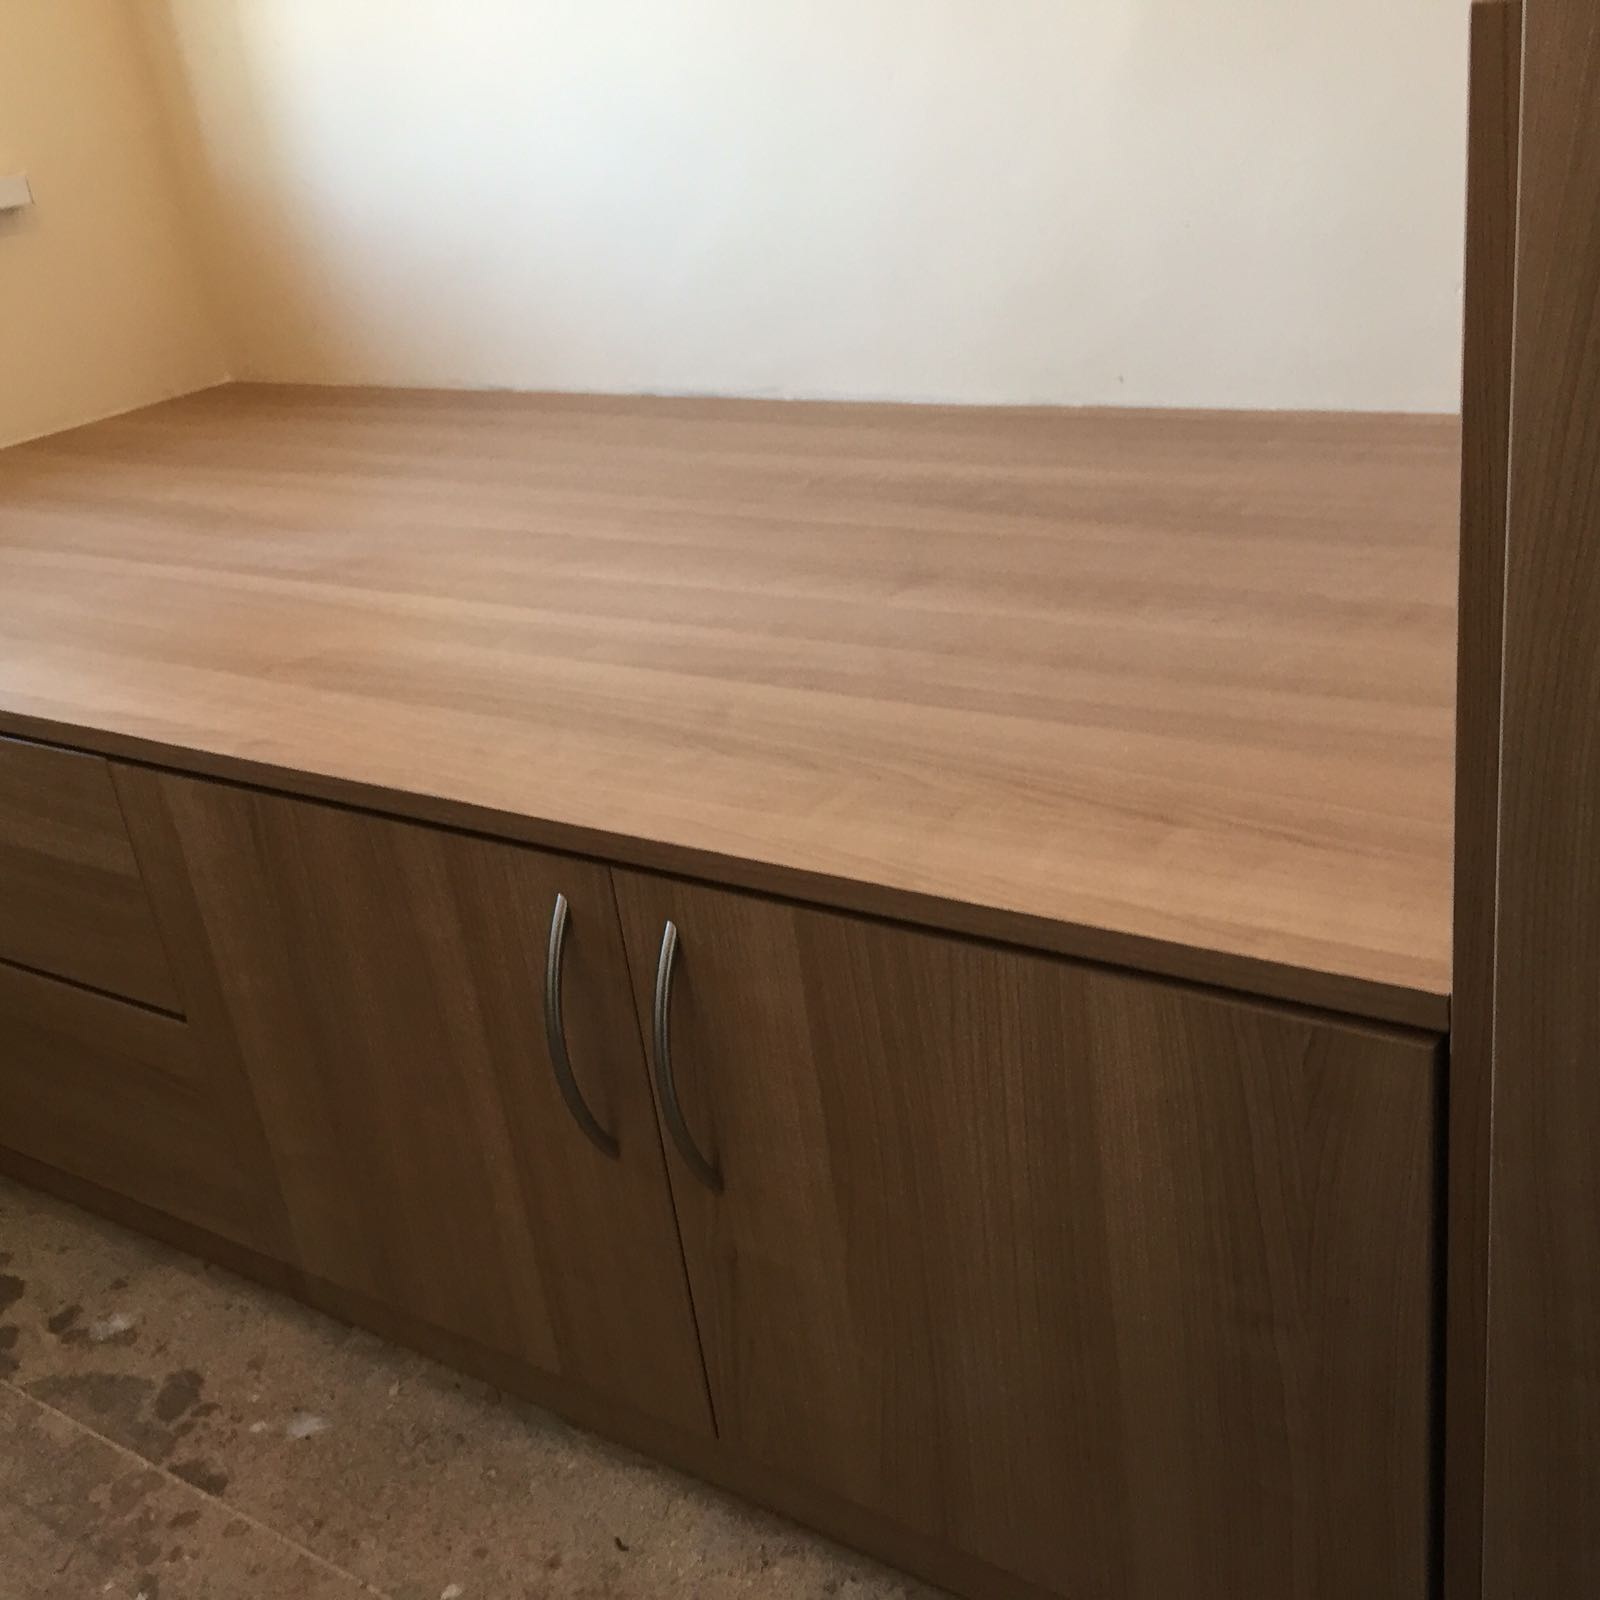 Cabin Bedroom Fitted Furniture: Cabin Bed With Single Wardrobe